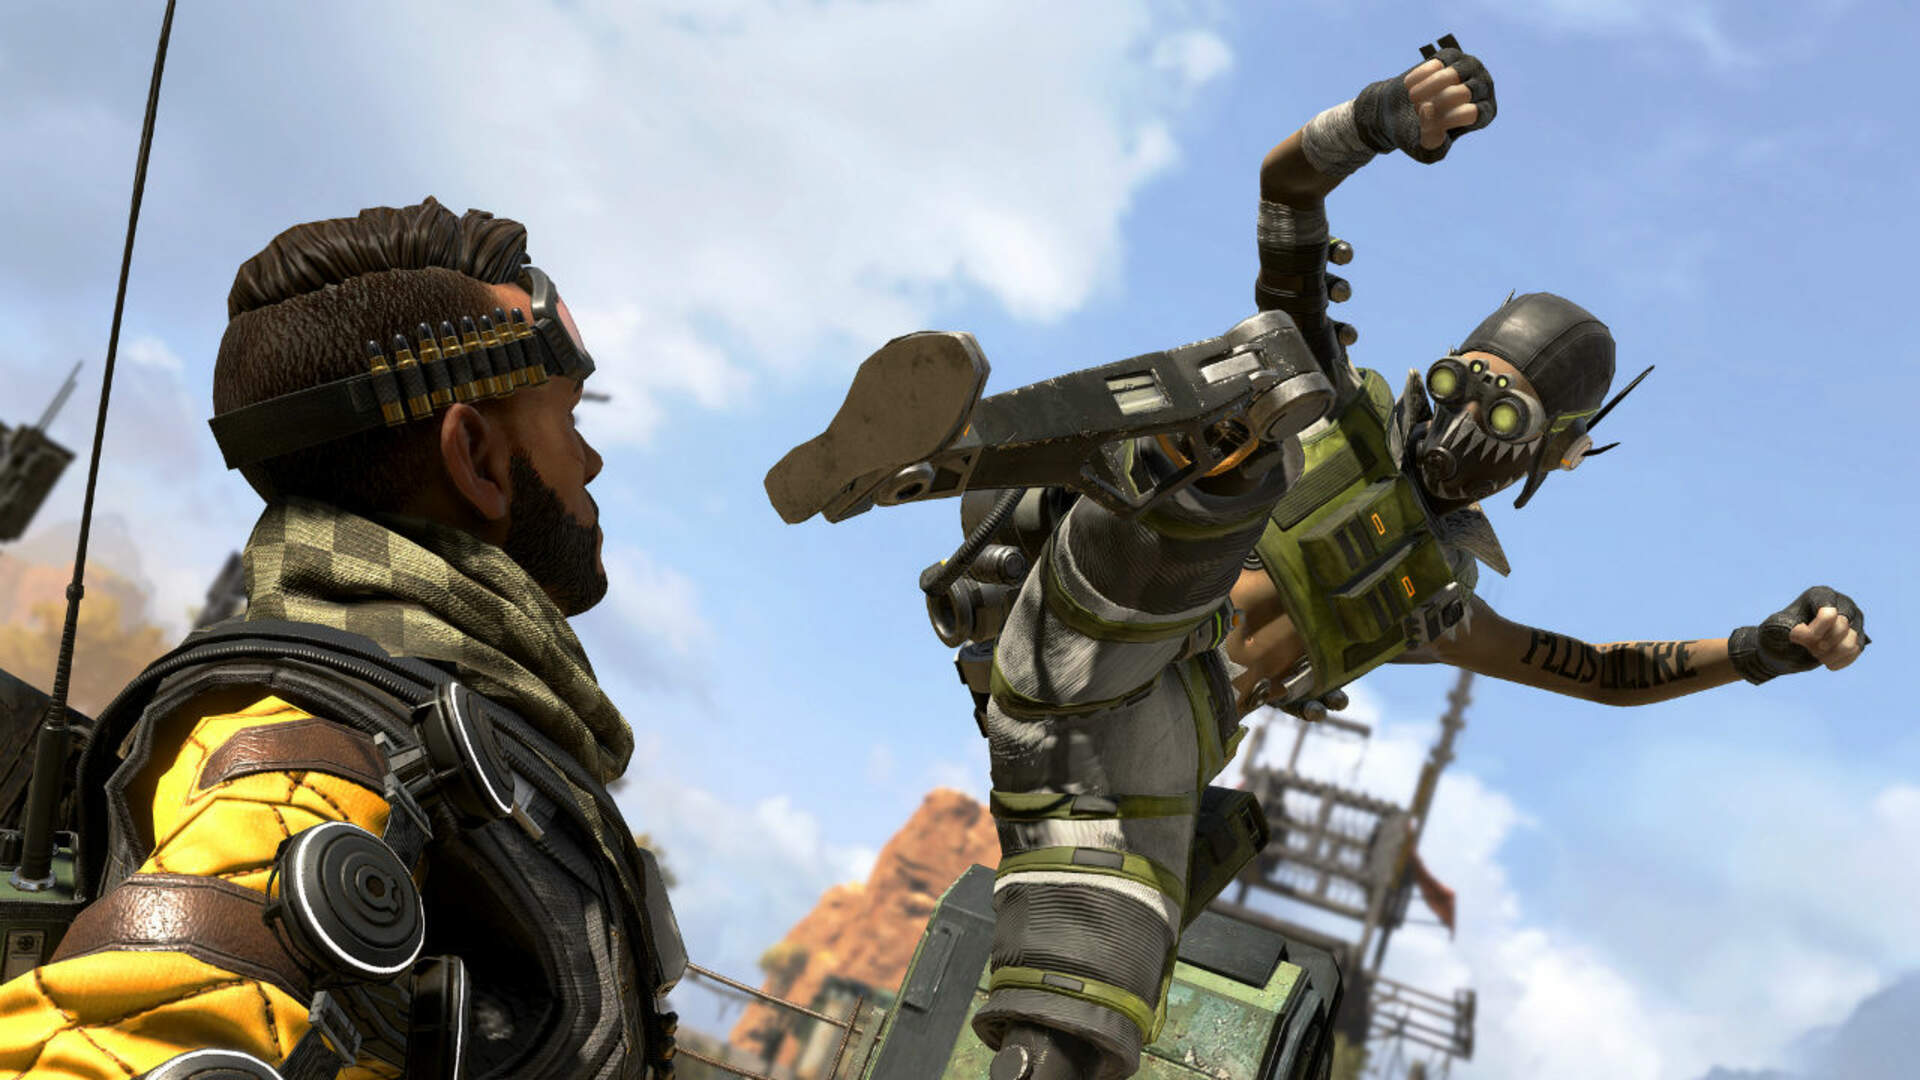 Apex Legends Servers Down After Update Resets Players' Progress